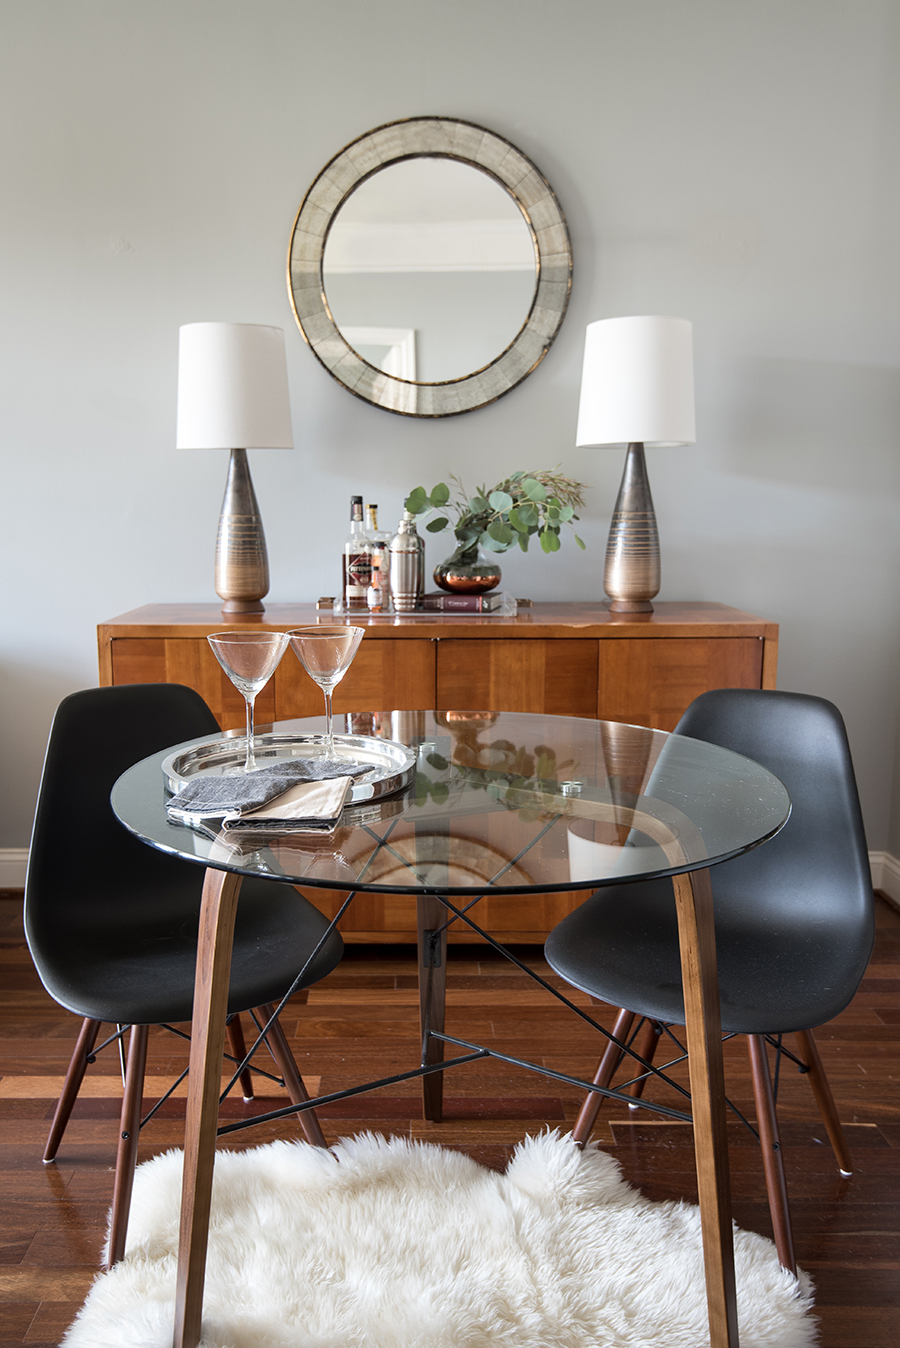 small-dining-room-collected-apartment-living-vintage-pieces-splendor-styling-mariella-cruzado.jpg